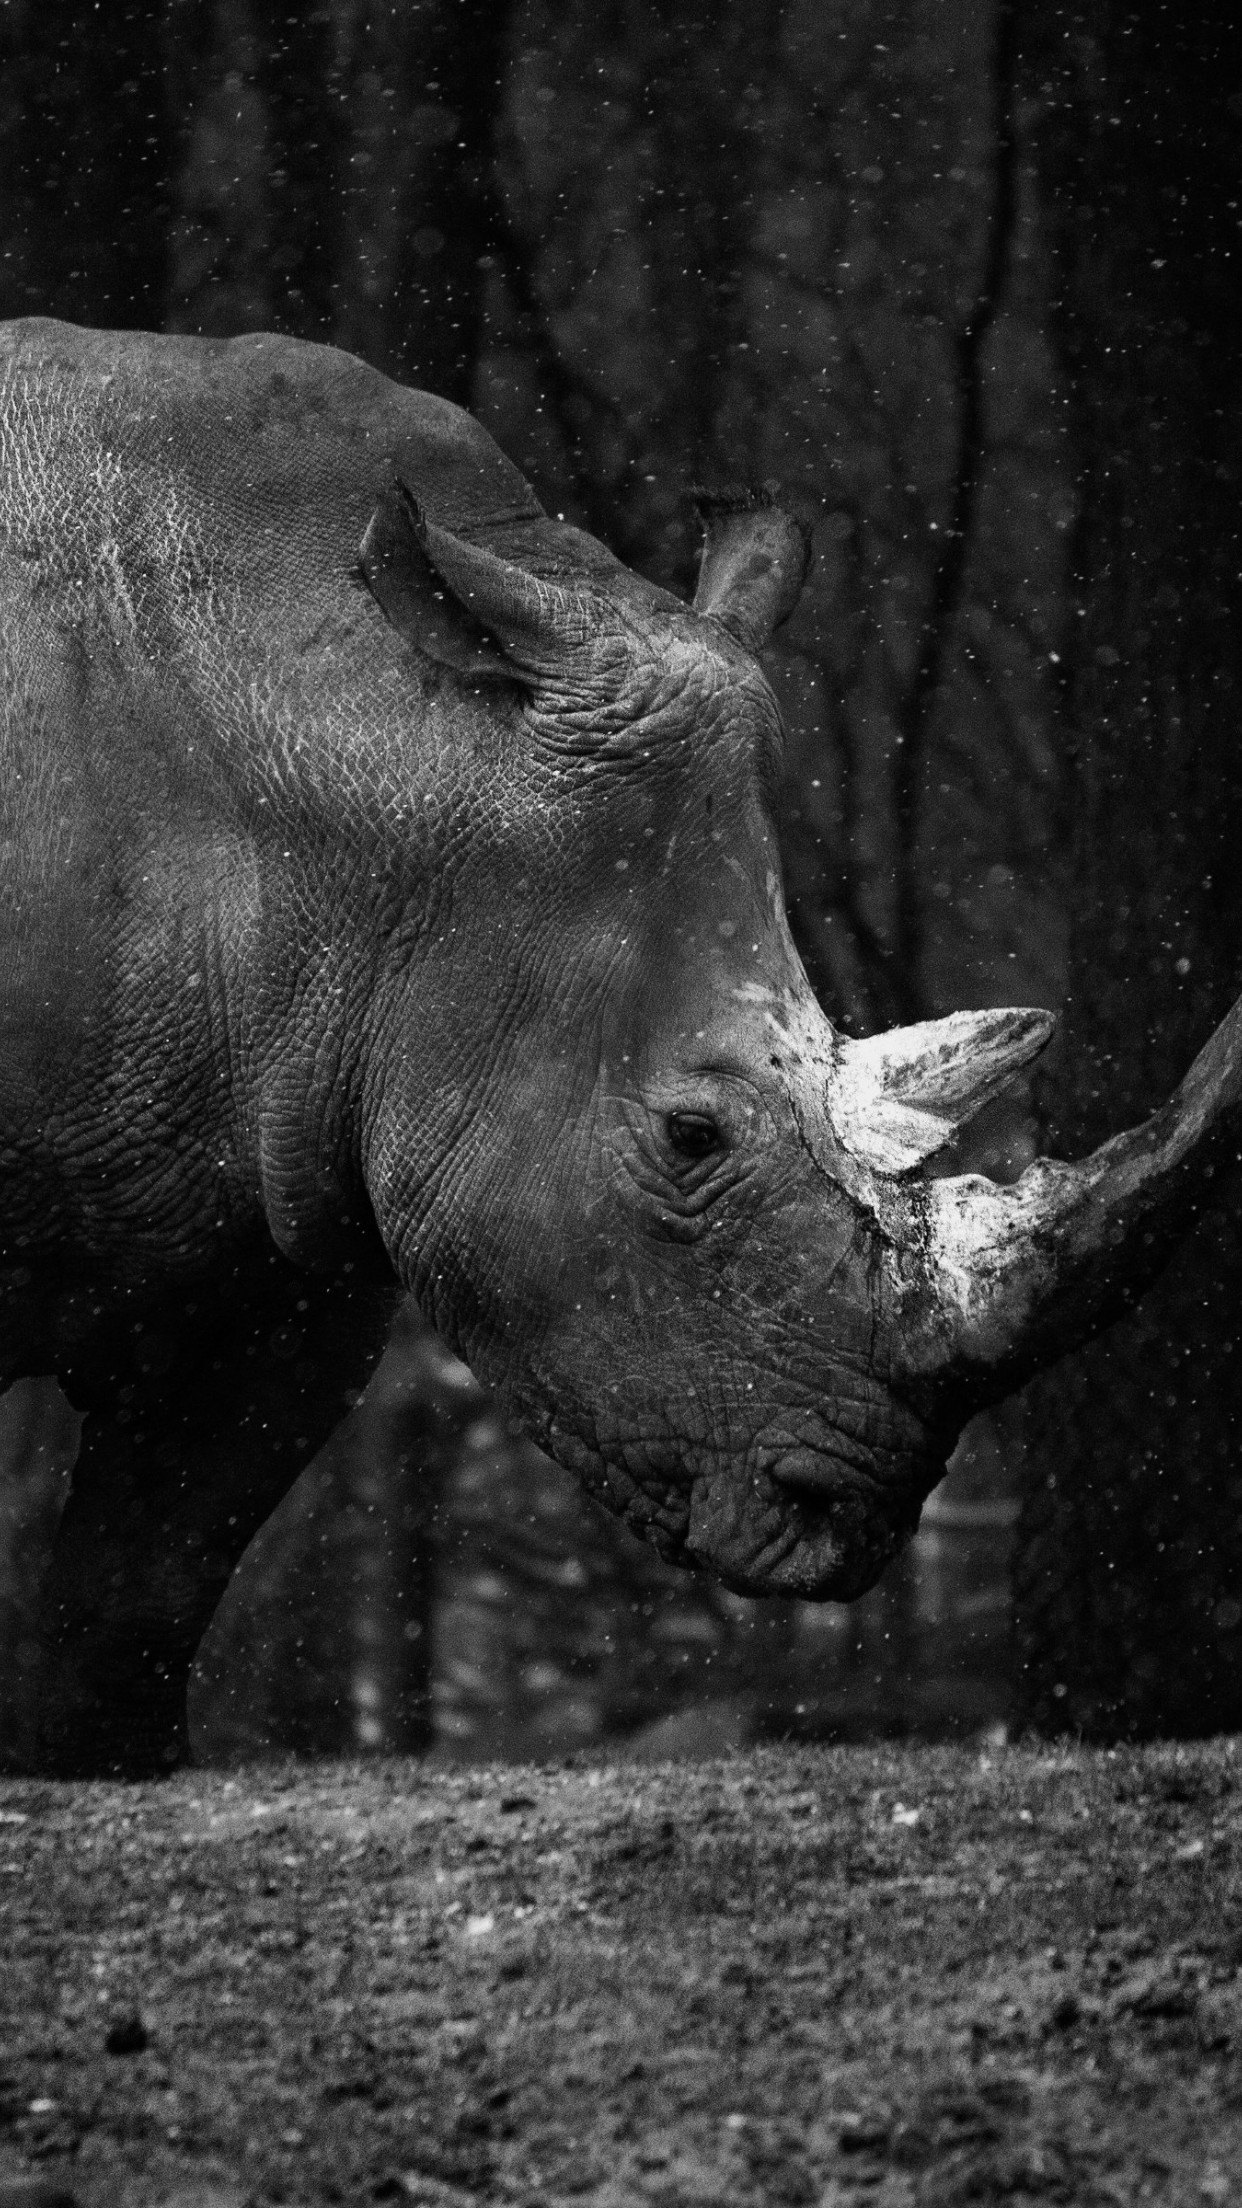 Rhino at zoo wallpaper 1242x2208